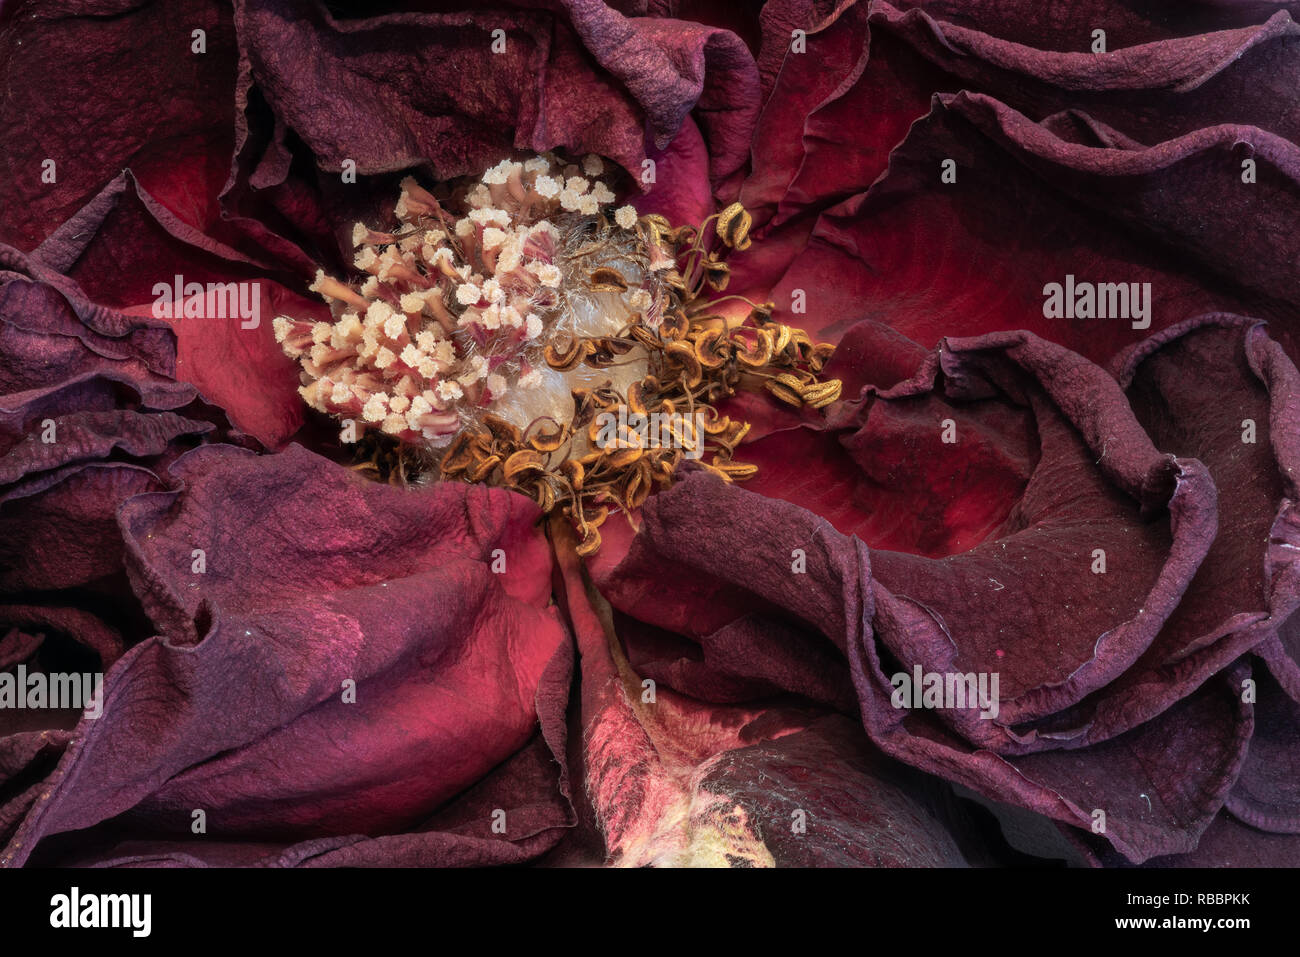 Fine art still life floral close up macro of the inner of an aged lush purple dark red velvety rose blossom with detailed texture - Stock Image